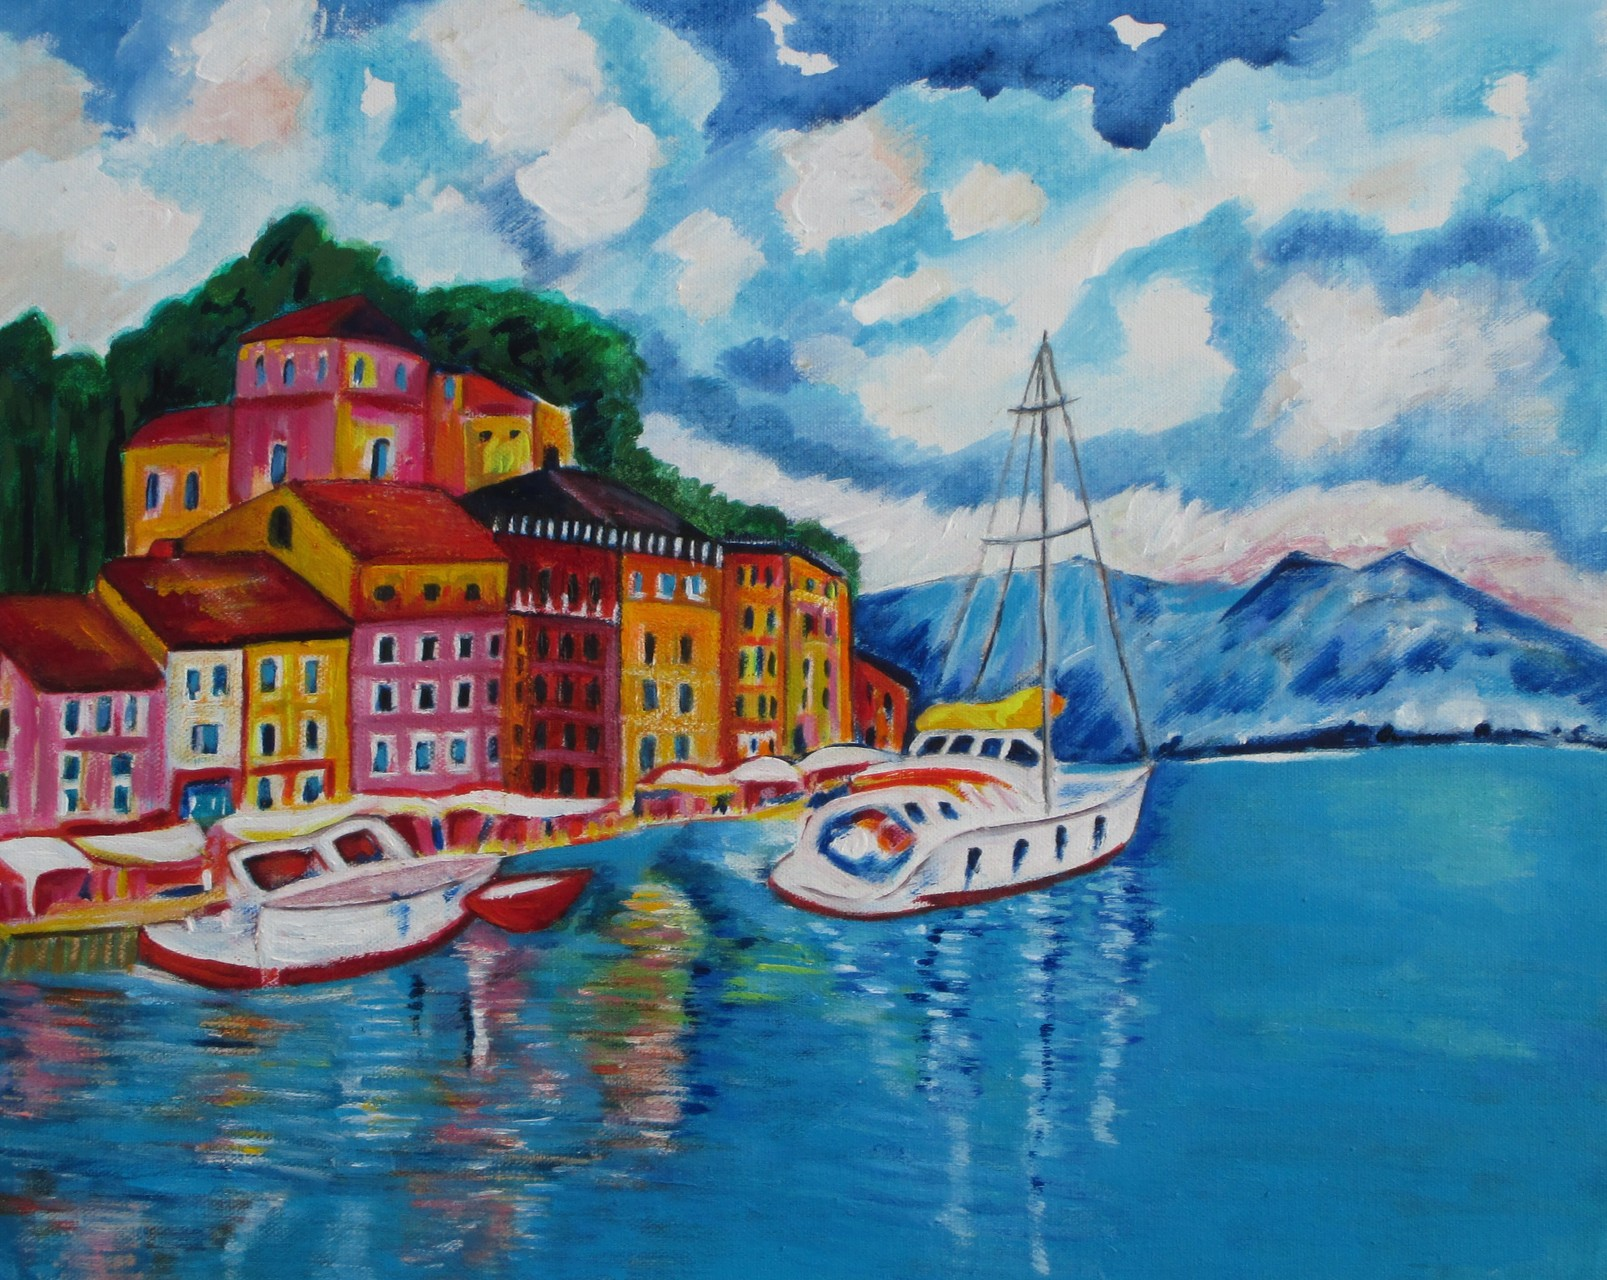 Portofino, acrylic on canvas, 20 x 16